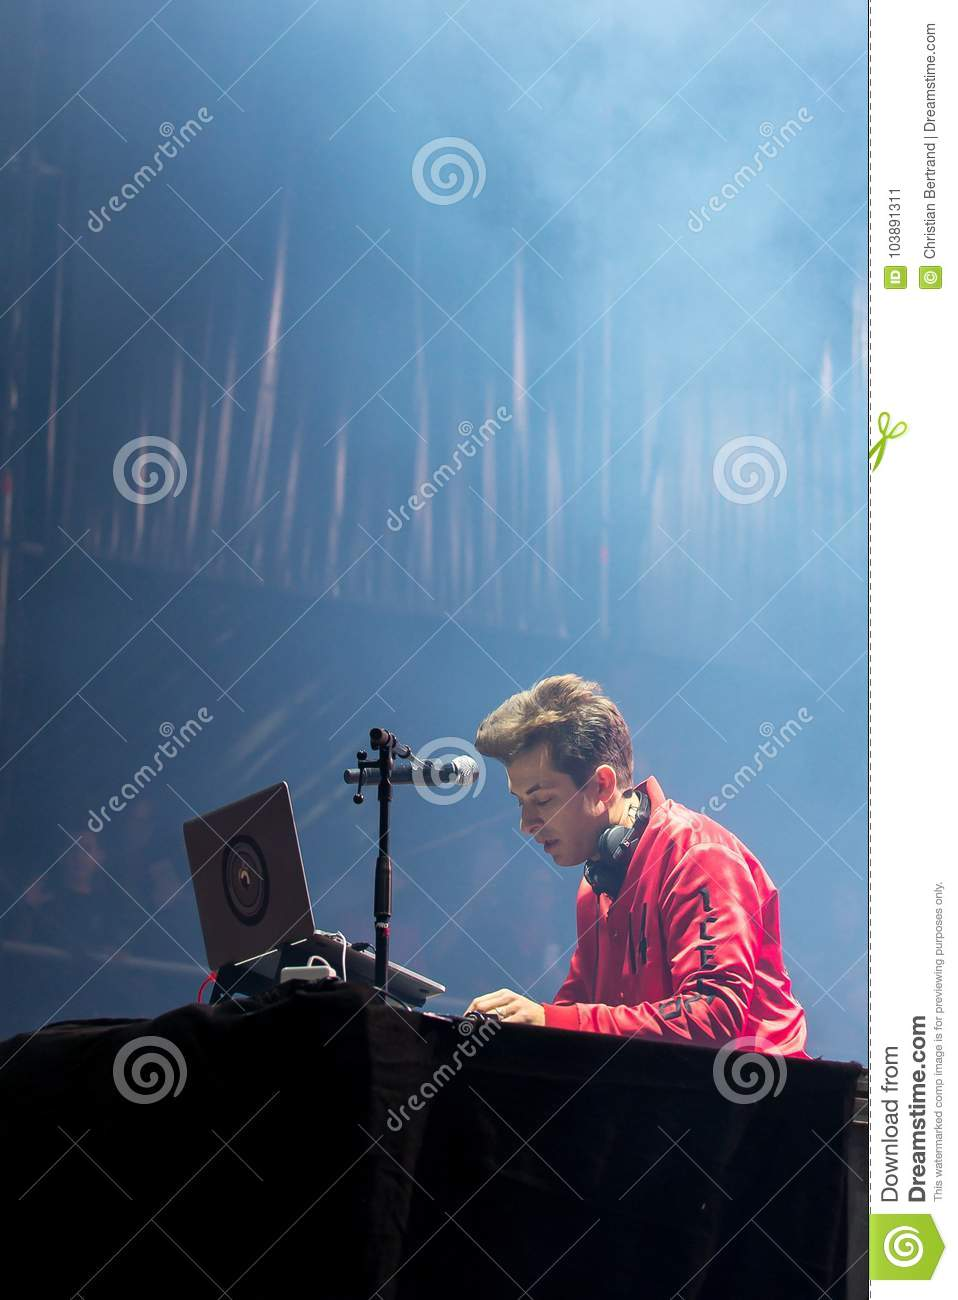 Mark Ronson famous musician, DJ, singer, songwriter and record producer perform in concert at Dcode Music Festival